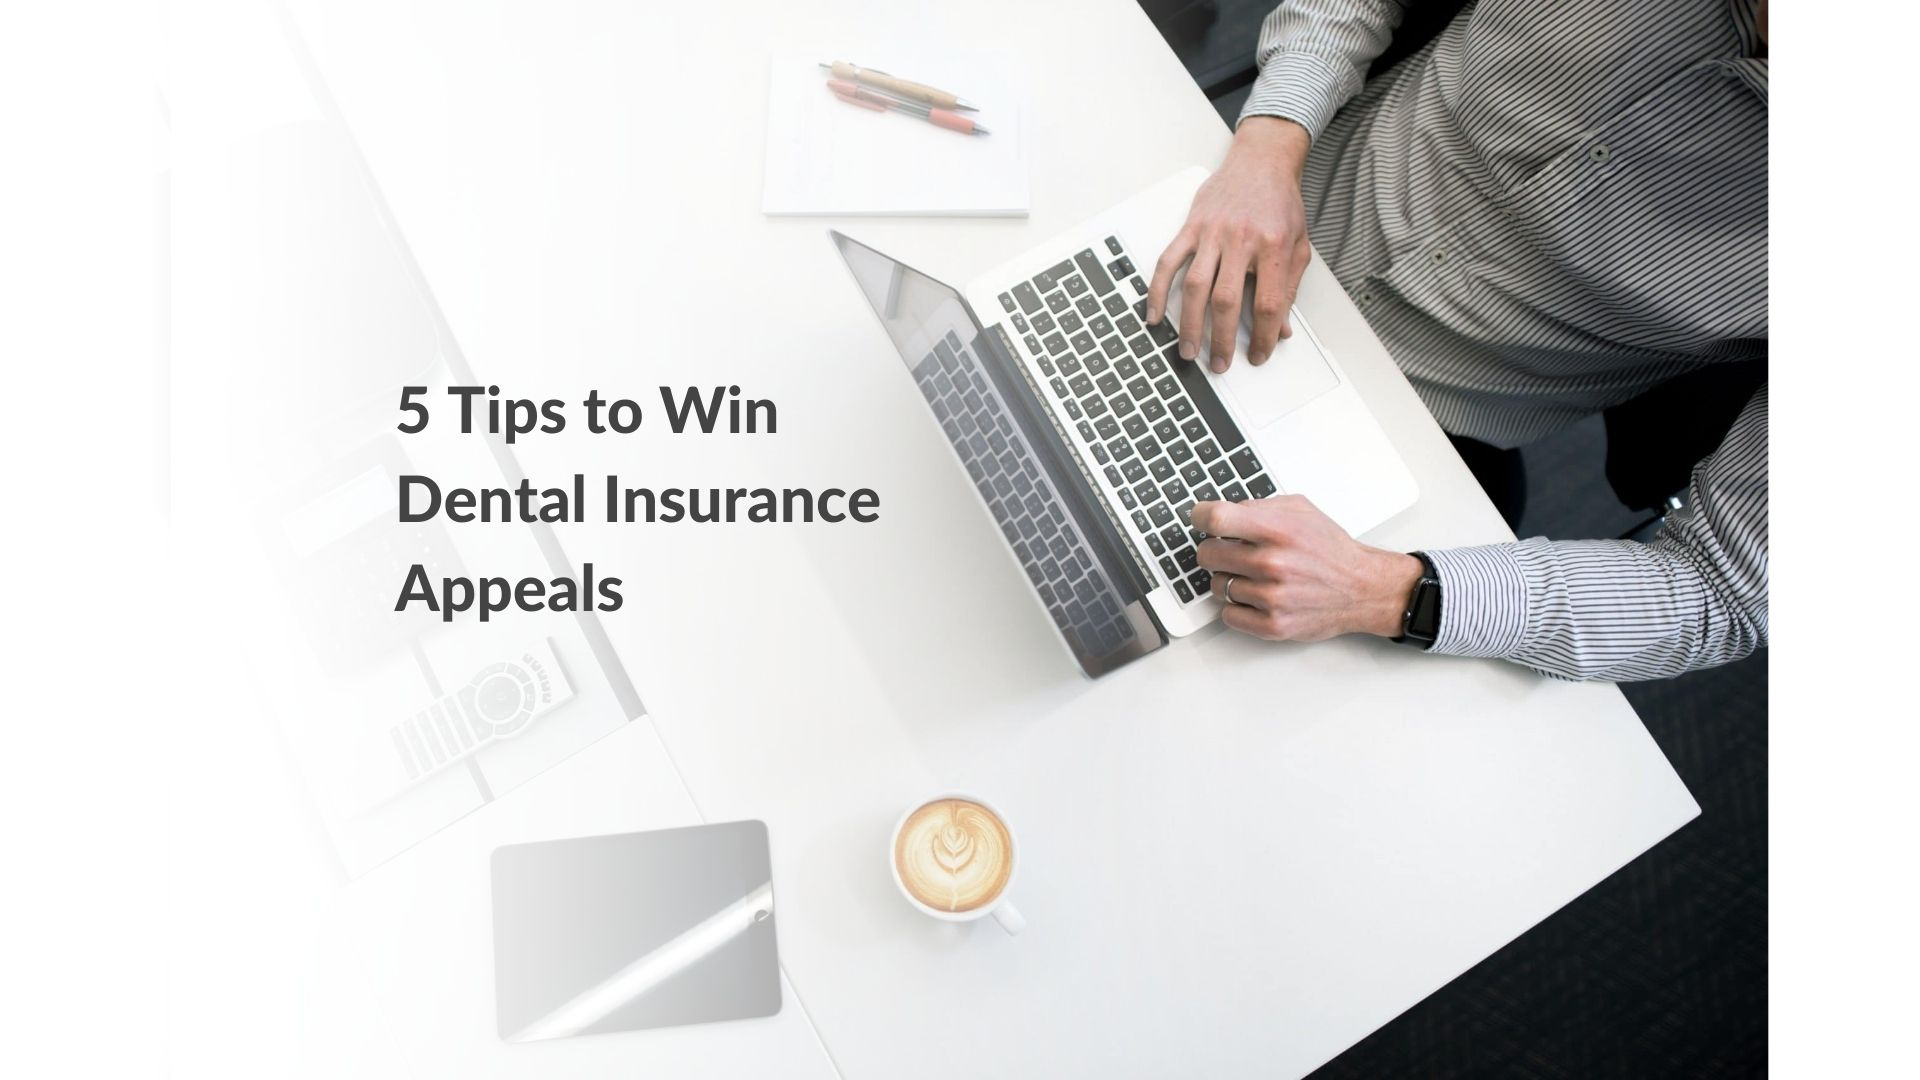 How to Win Dental Insurance Appeals: 5 Simple Tips